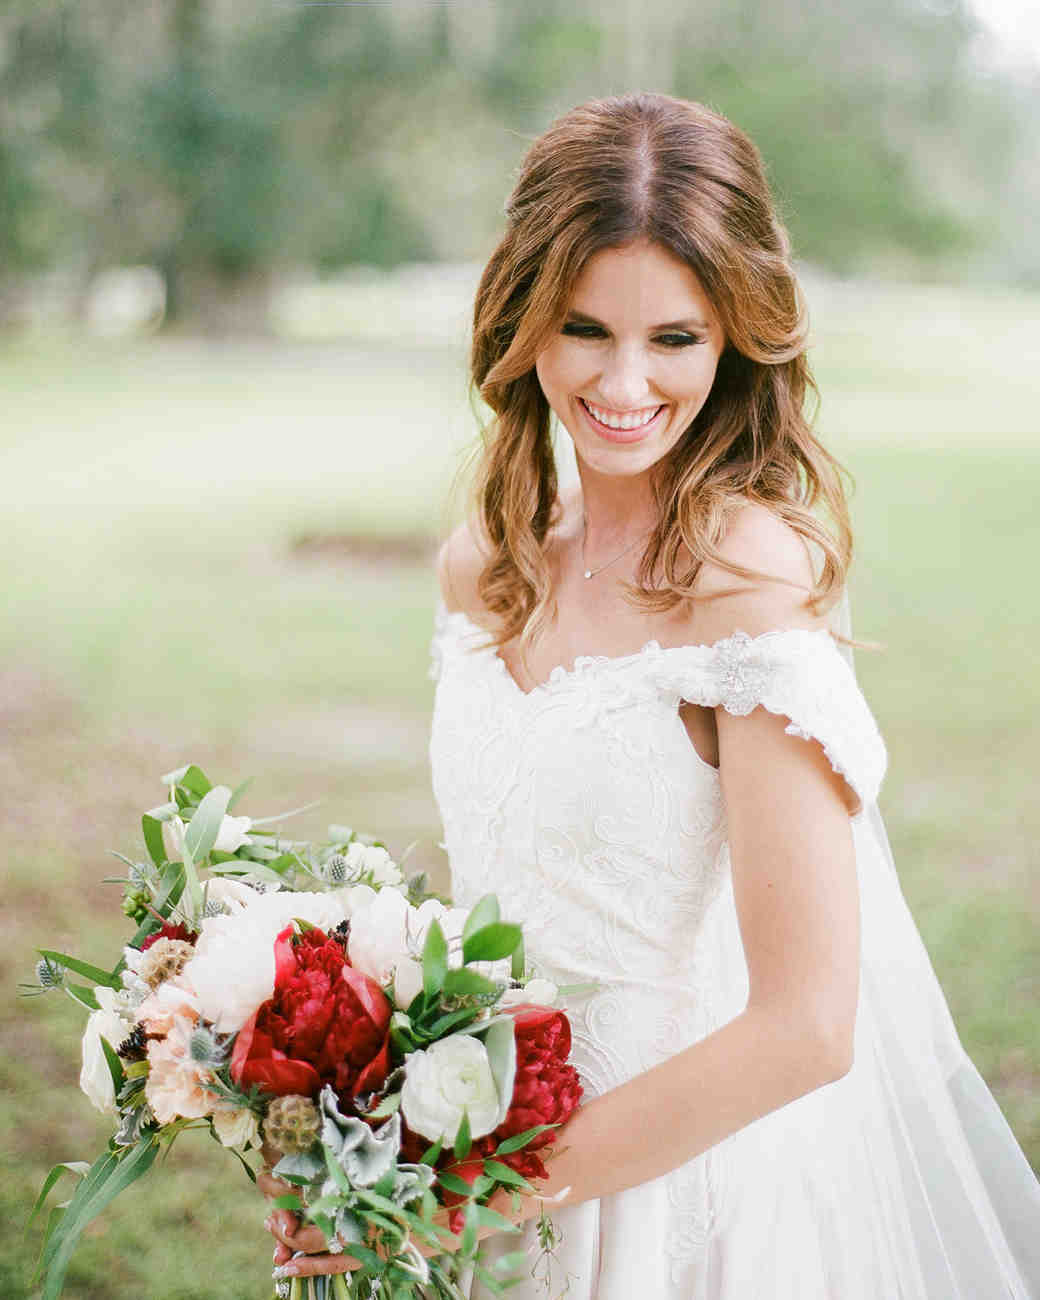 middle part hairstyles bride smiling holding red and white bouquet